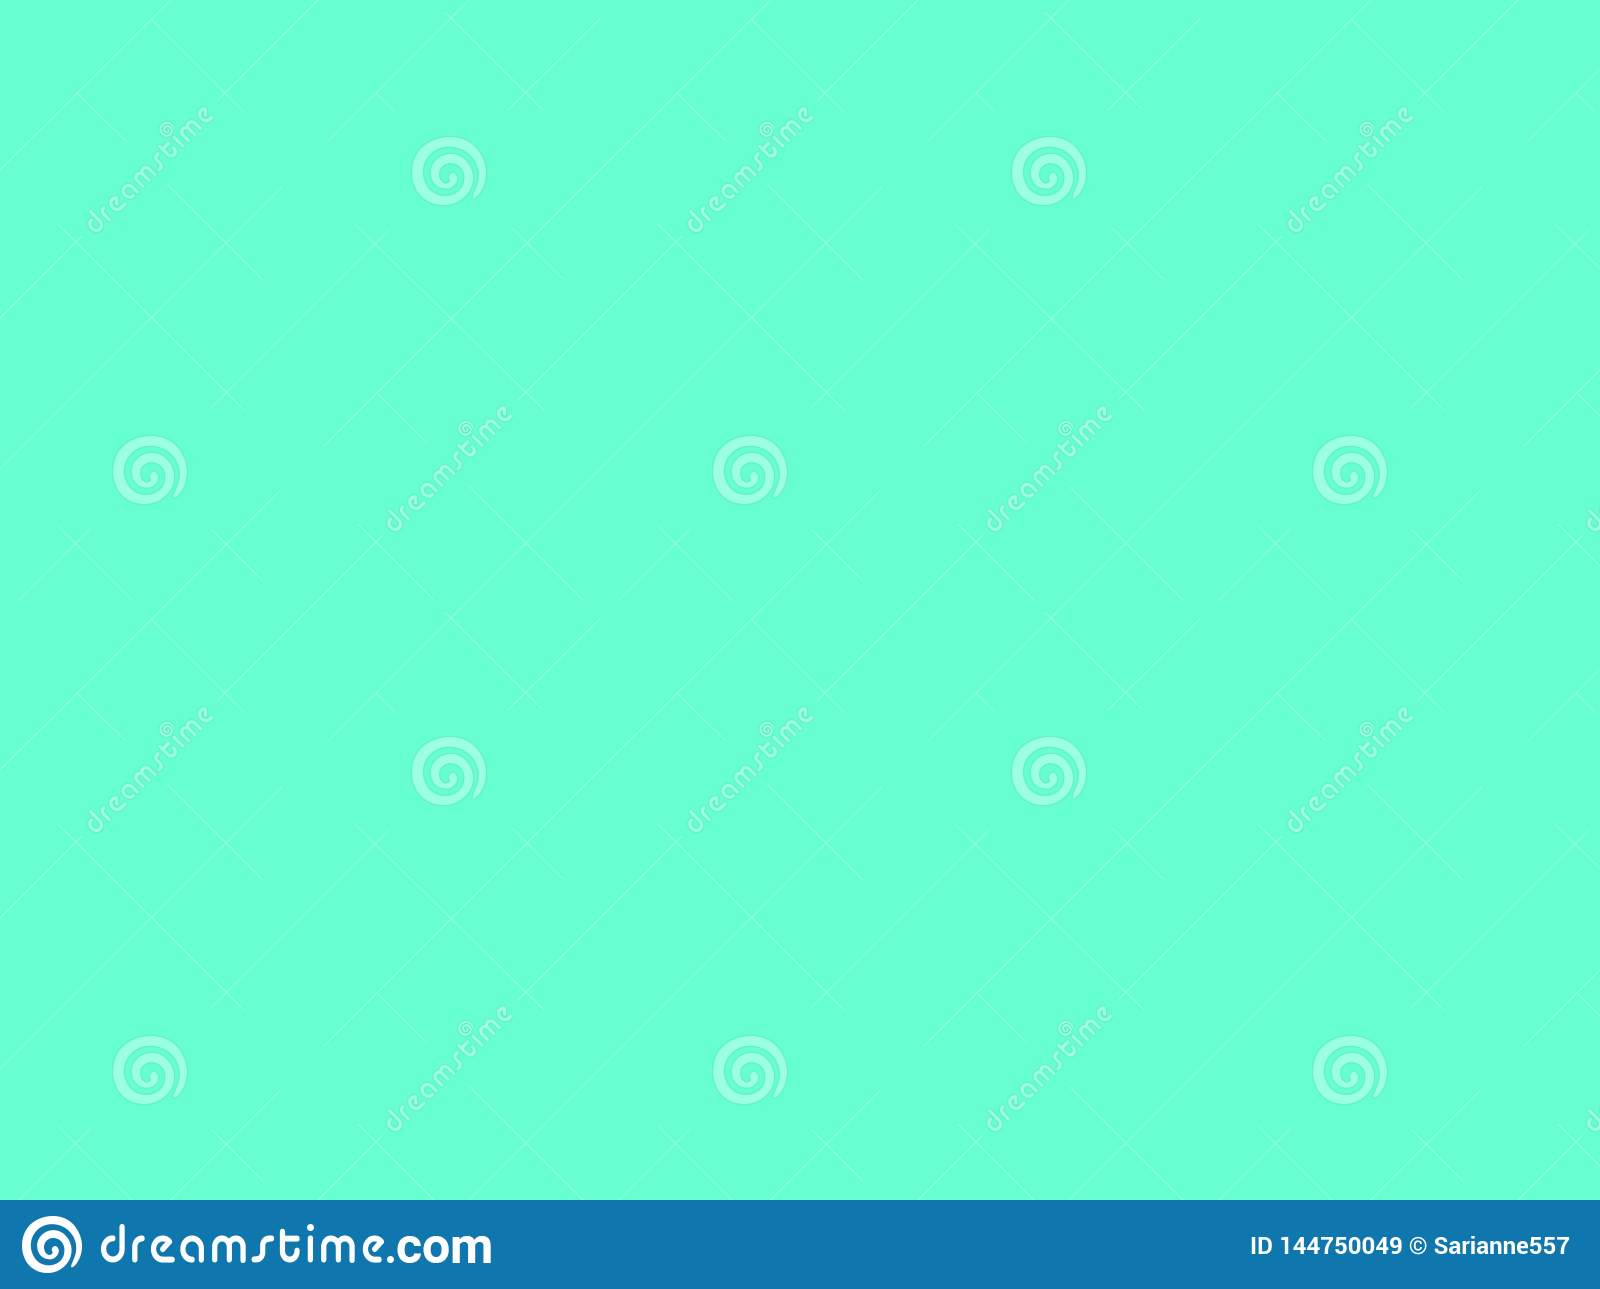 Plain Green Background Green Wallpaper Stock Image Image